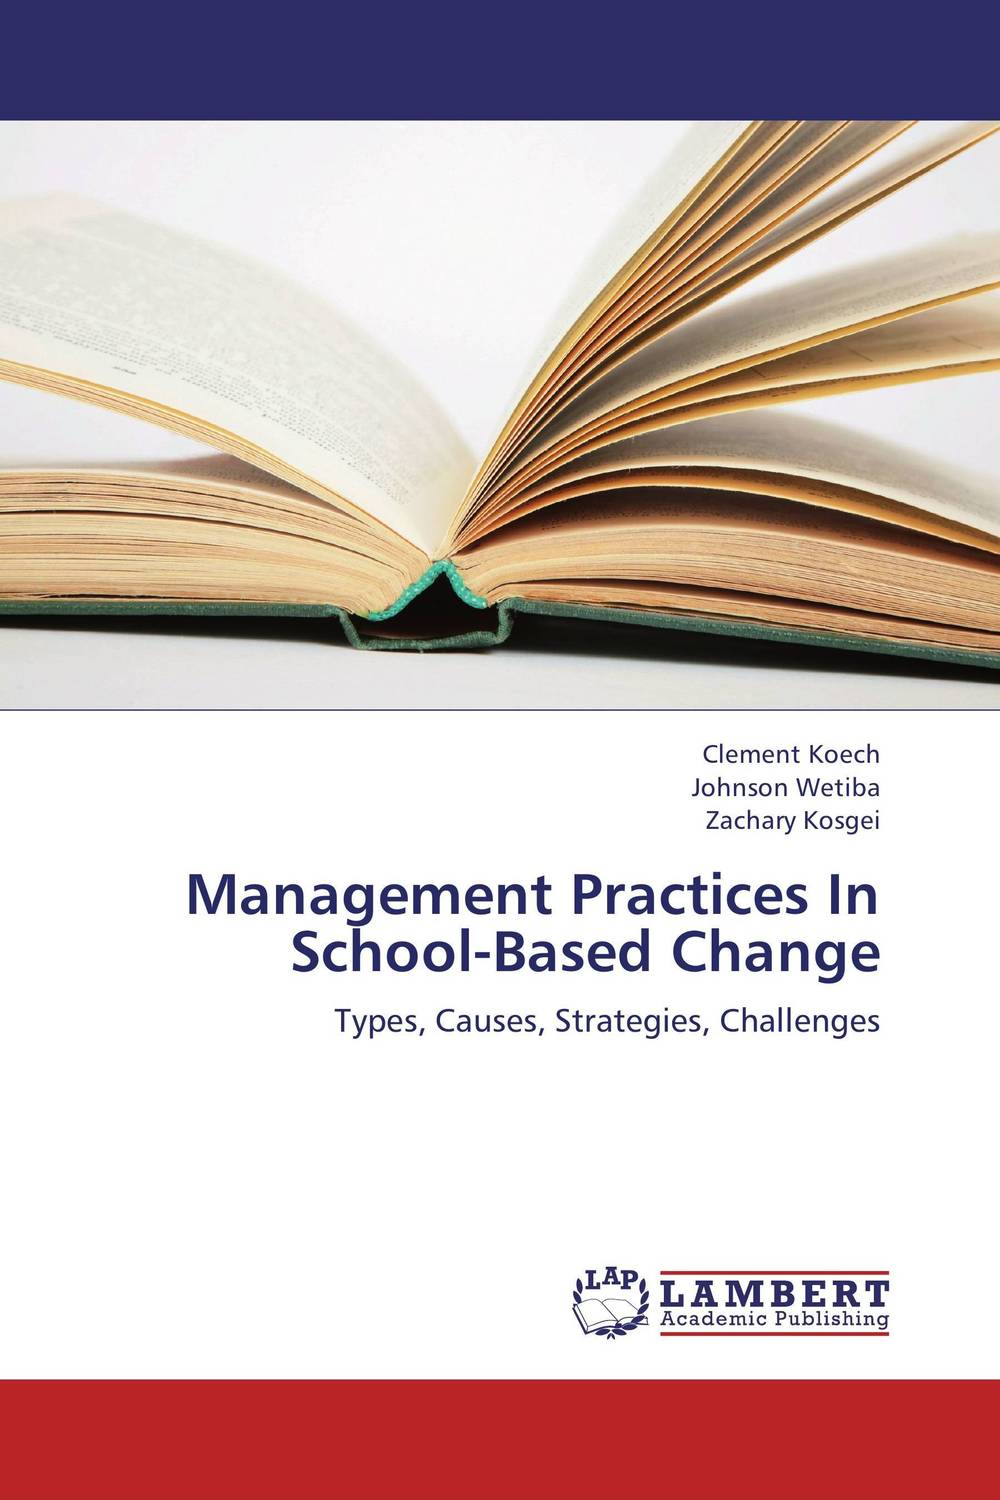 Management Practices In School-Based Change teach yourself change and crisis management